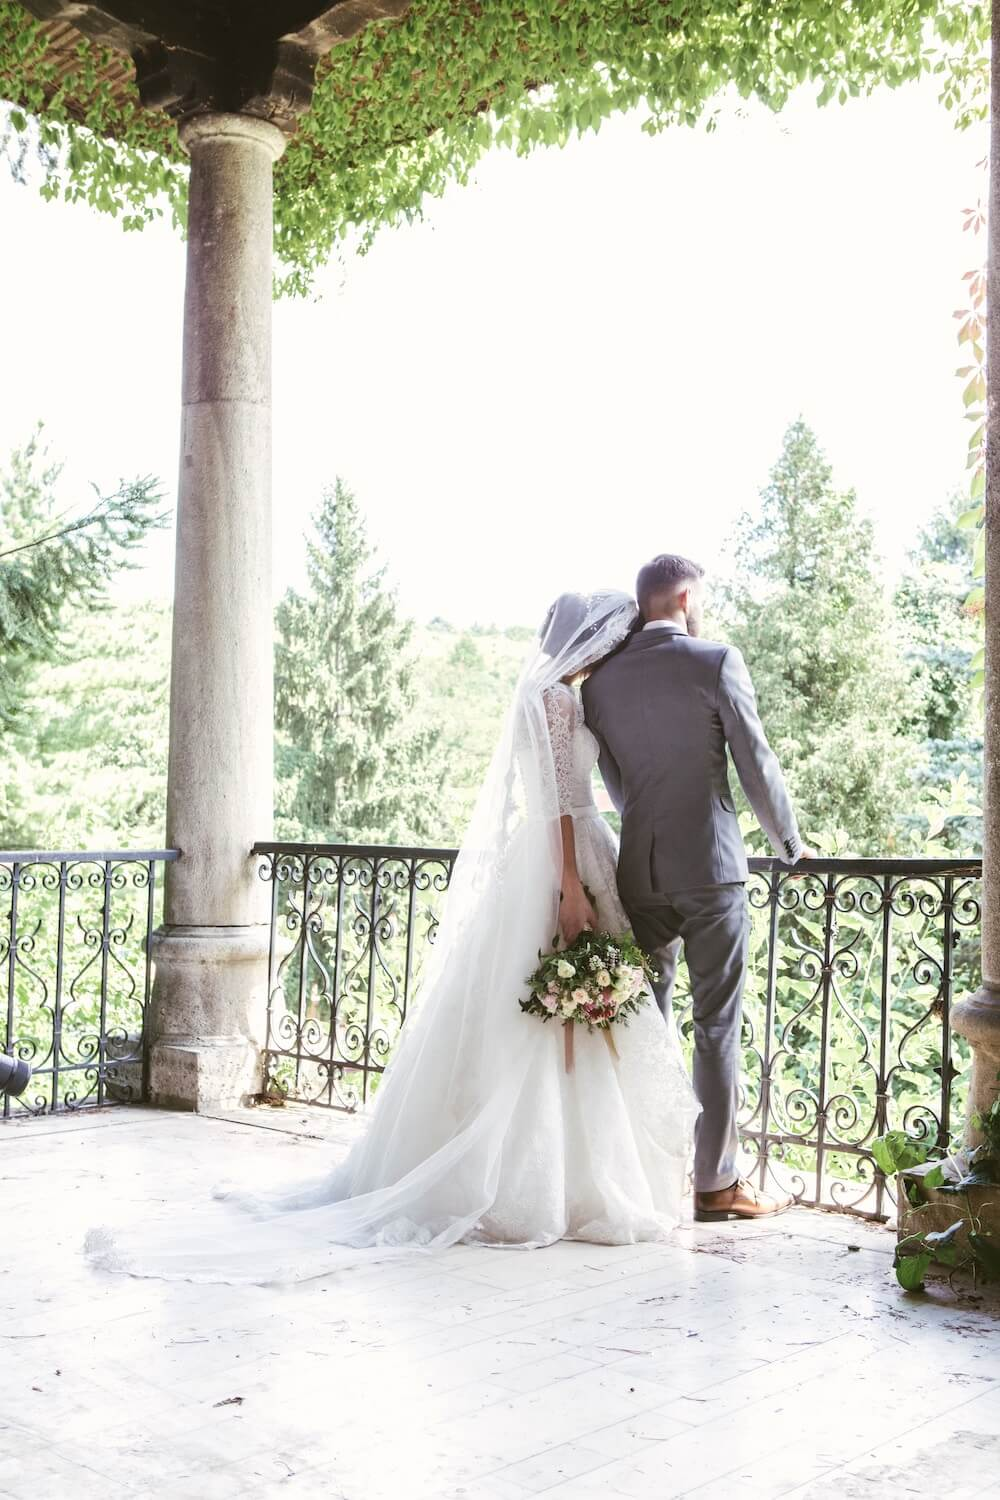 Bride and groom standing on terrace looking at trees